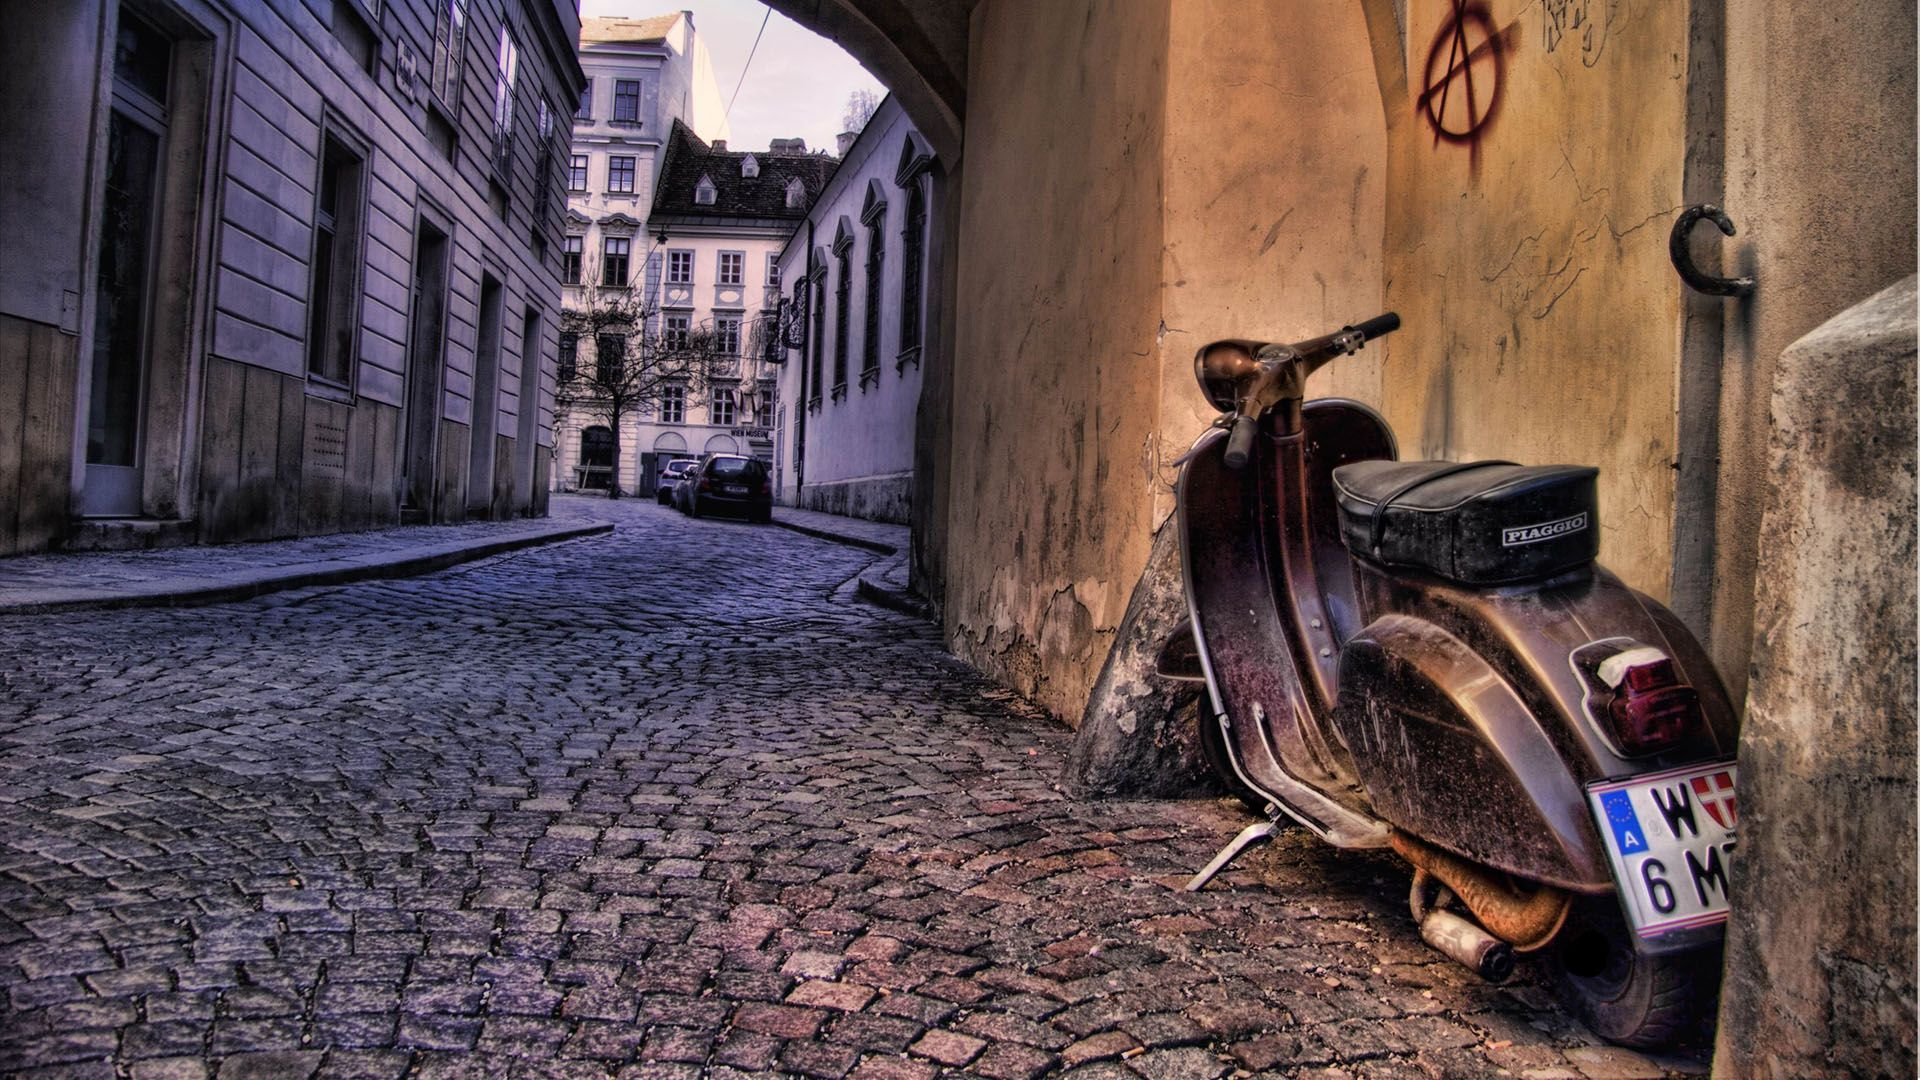 Old Scooter Italy Hd Cartoon Hd Wallpaper 1920x1080 Px With